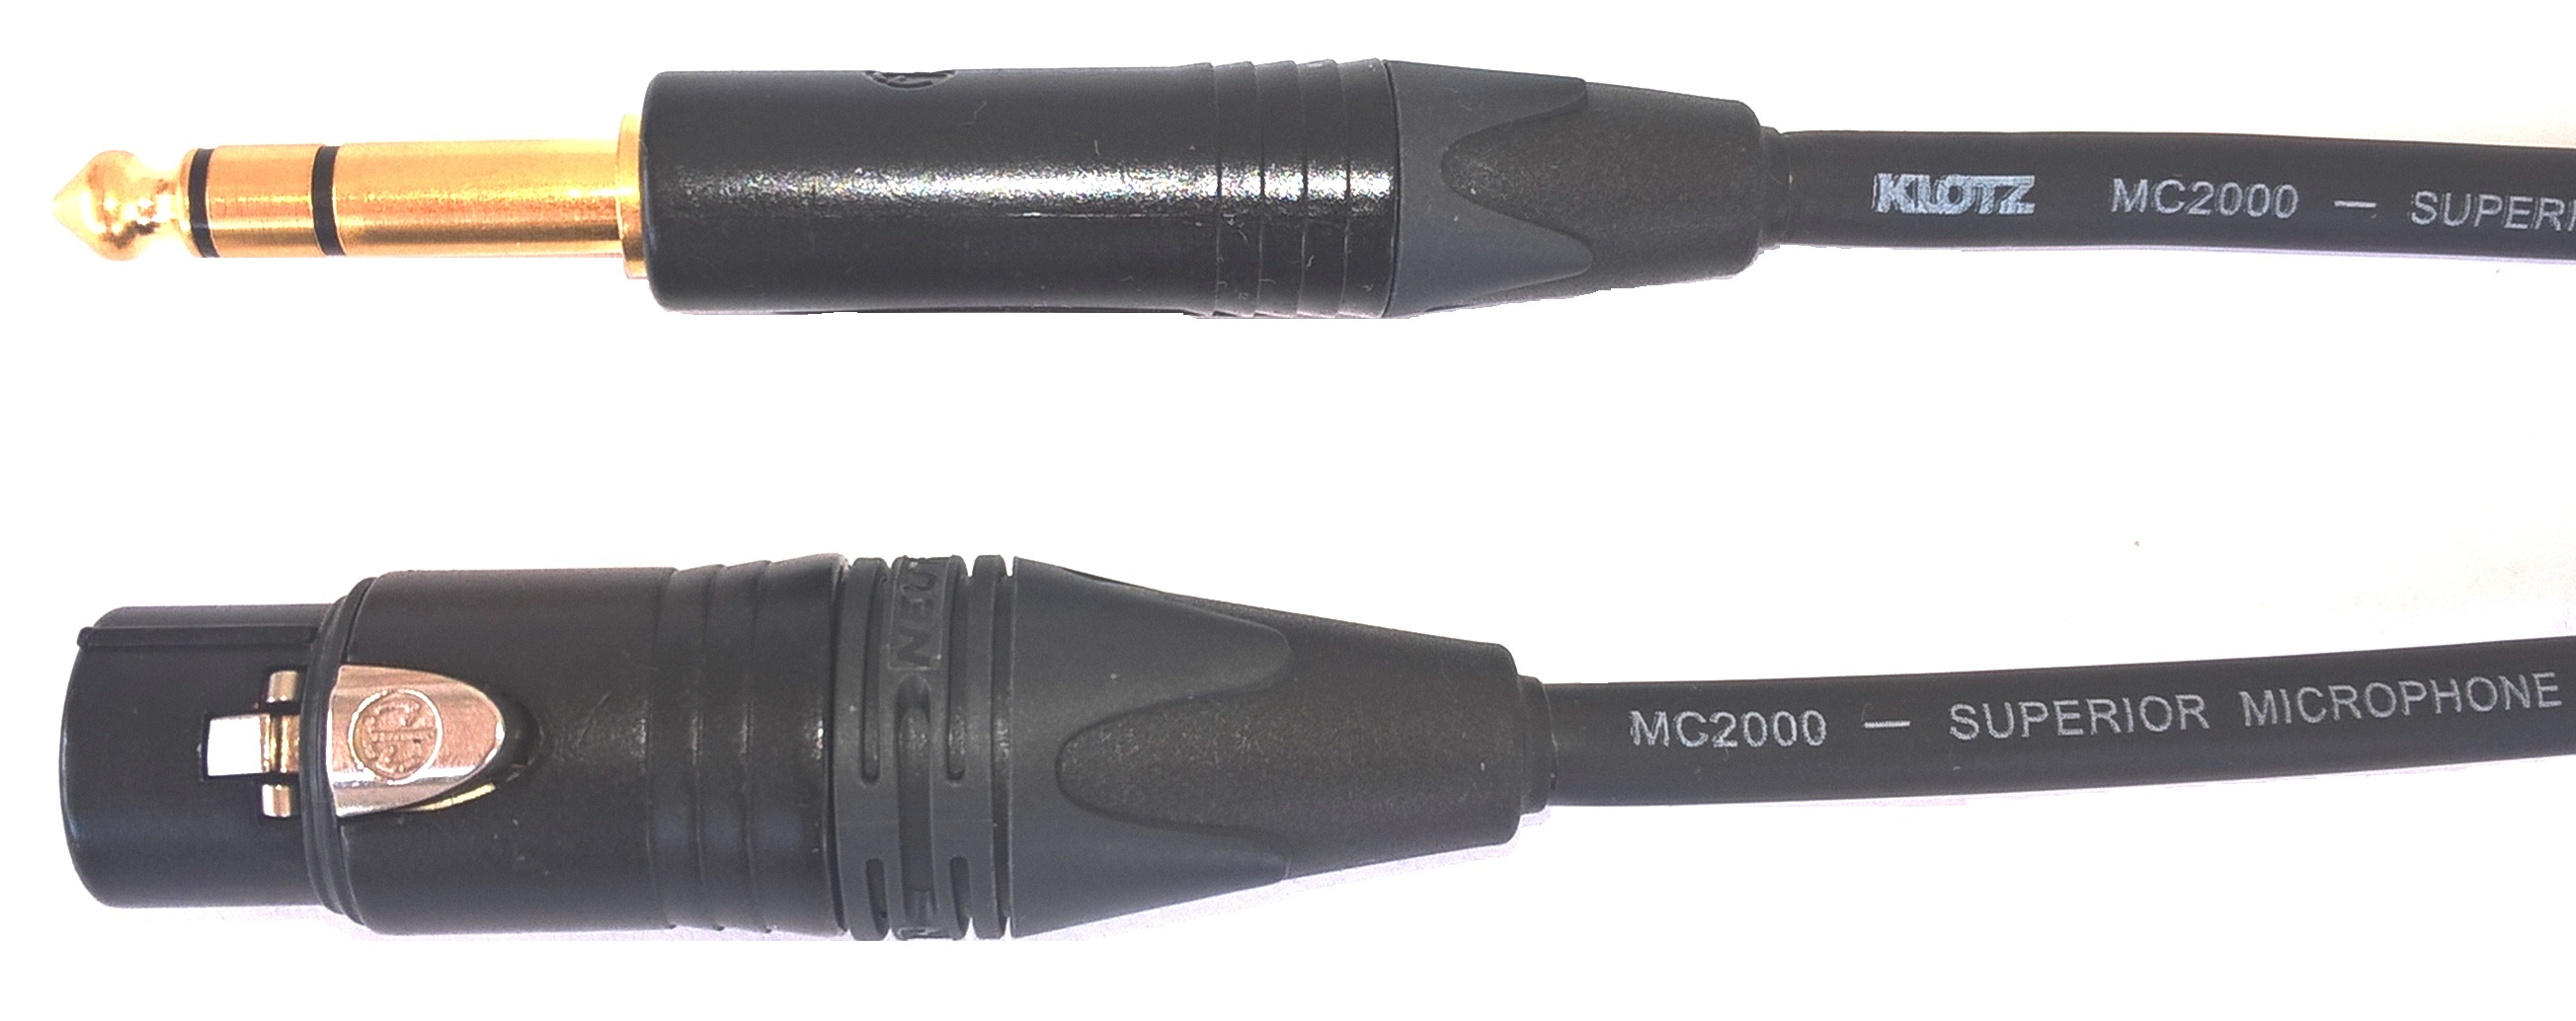 Audiokabel JACK 6,3 TRS/ XLR female, 0,5m, MC2000